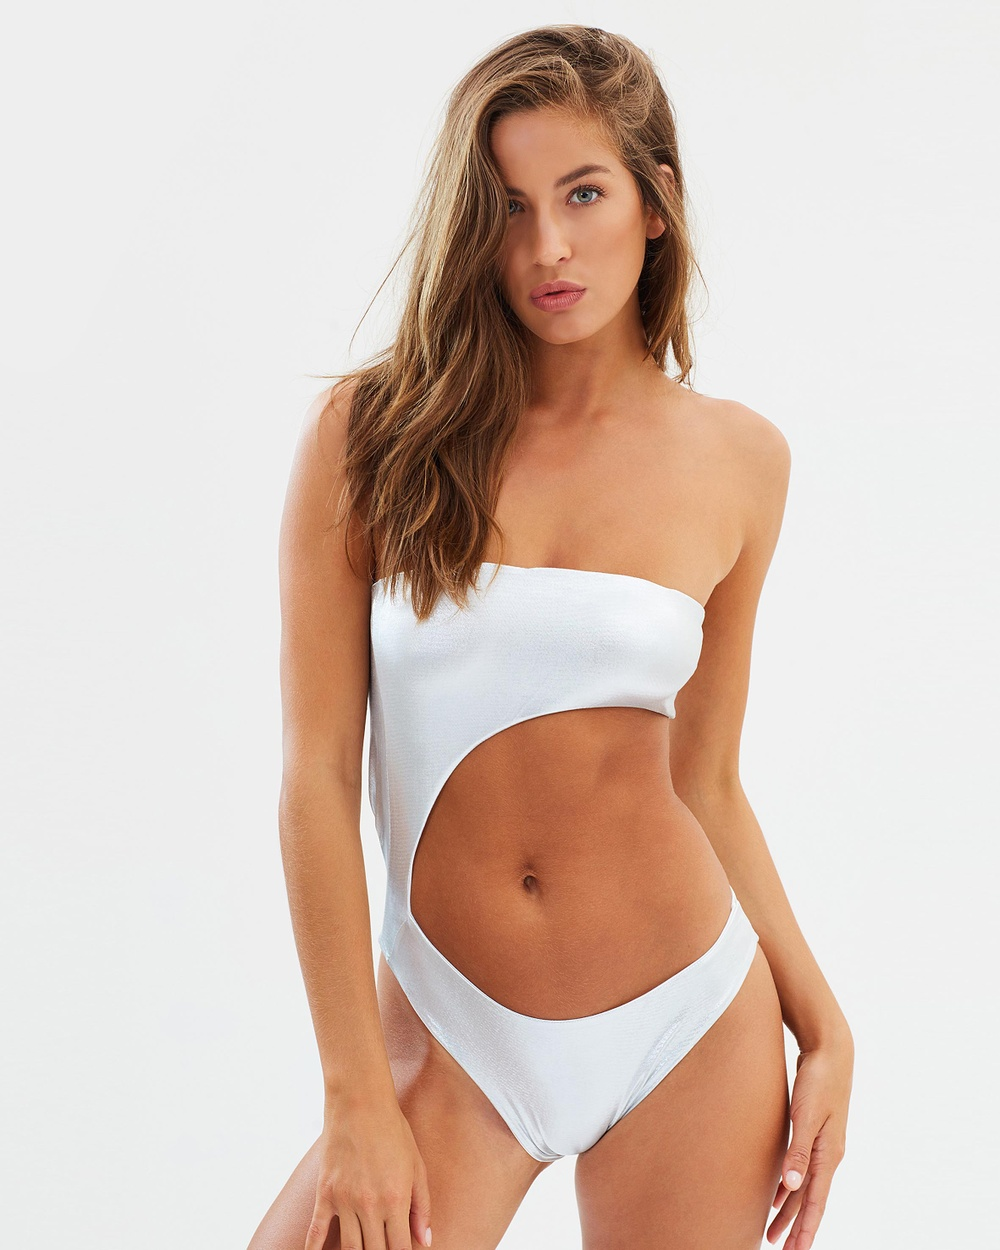 Lioness The Adriana One Piece One-Piece / Swimsuit Silver Metallic The Adriana One-Piece